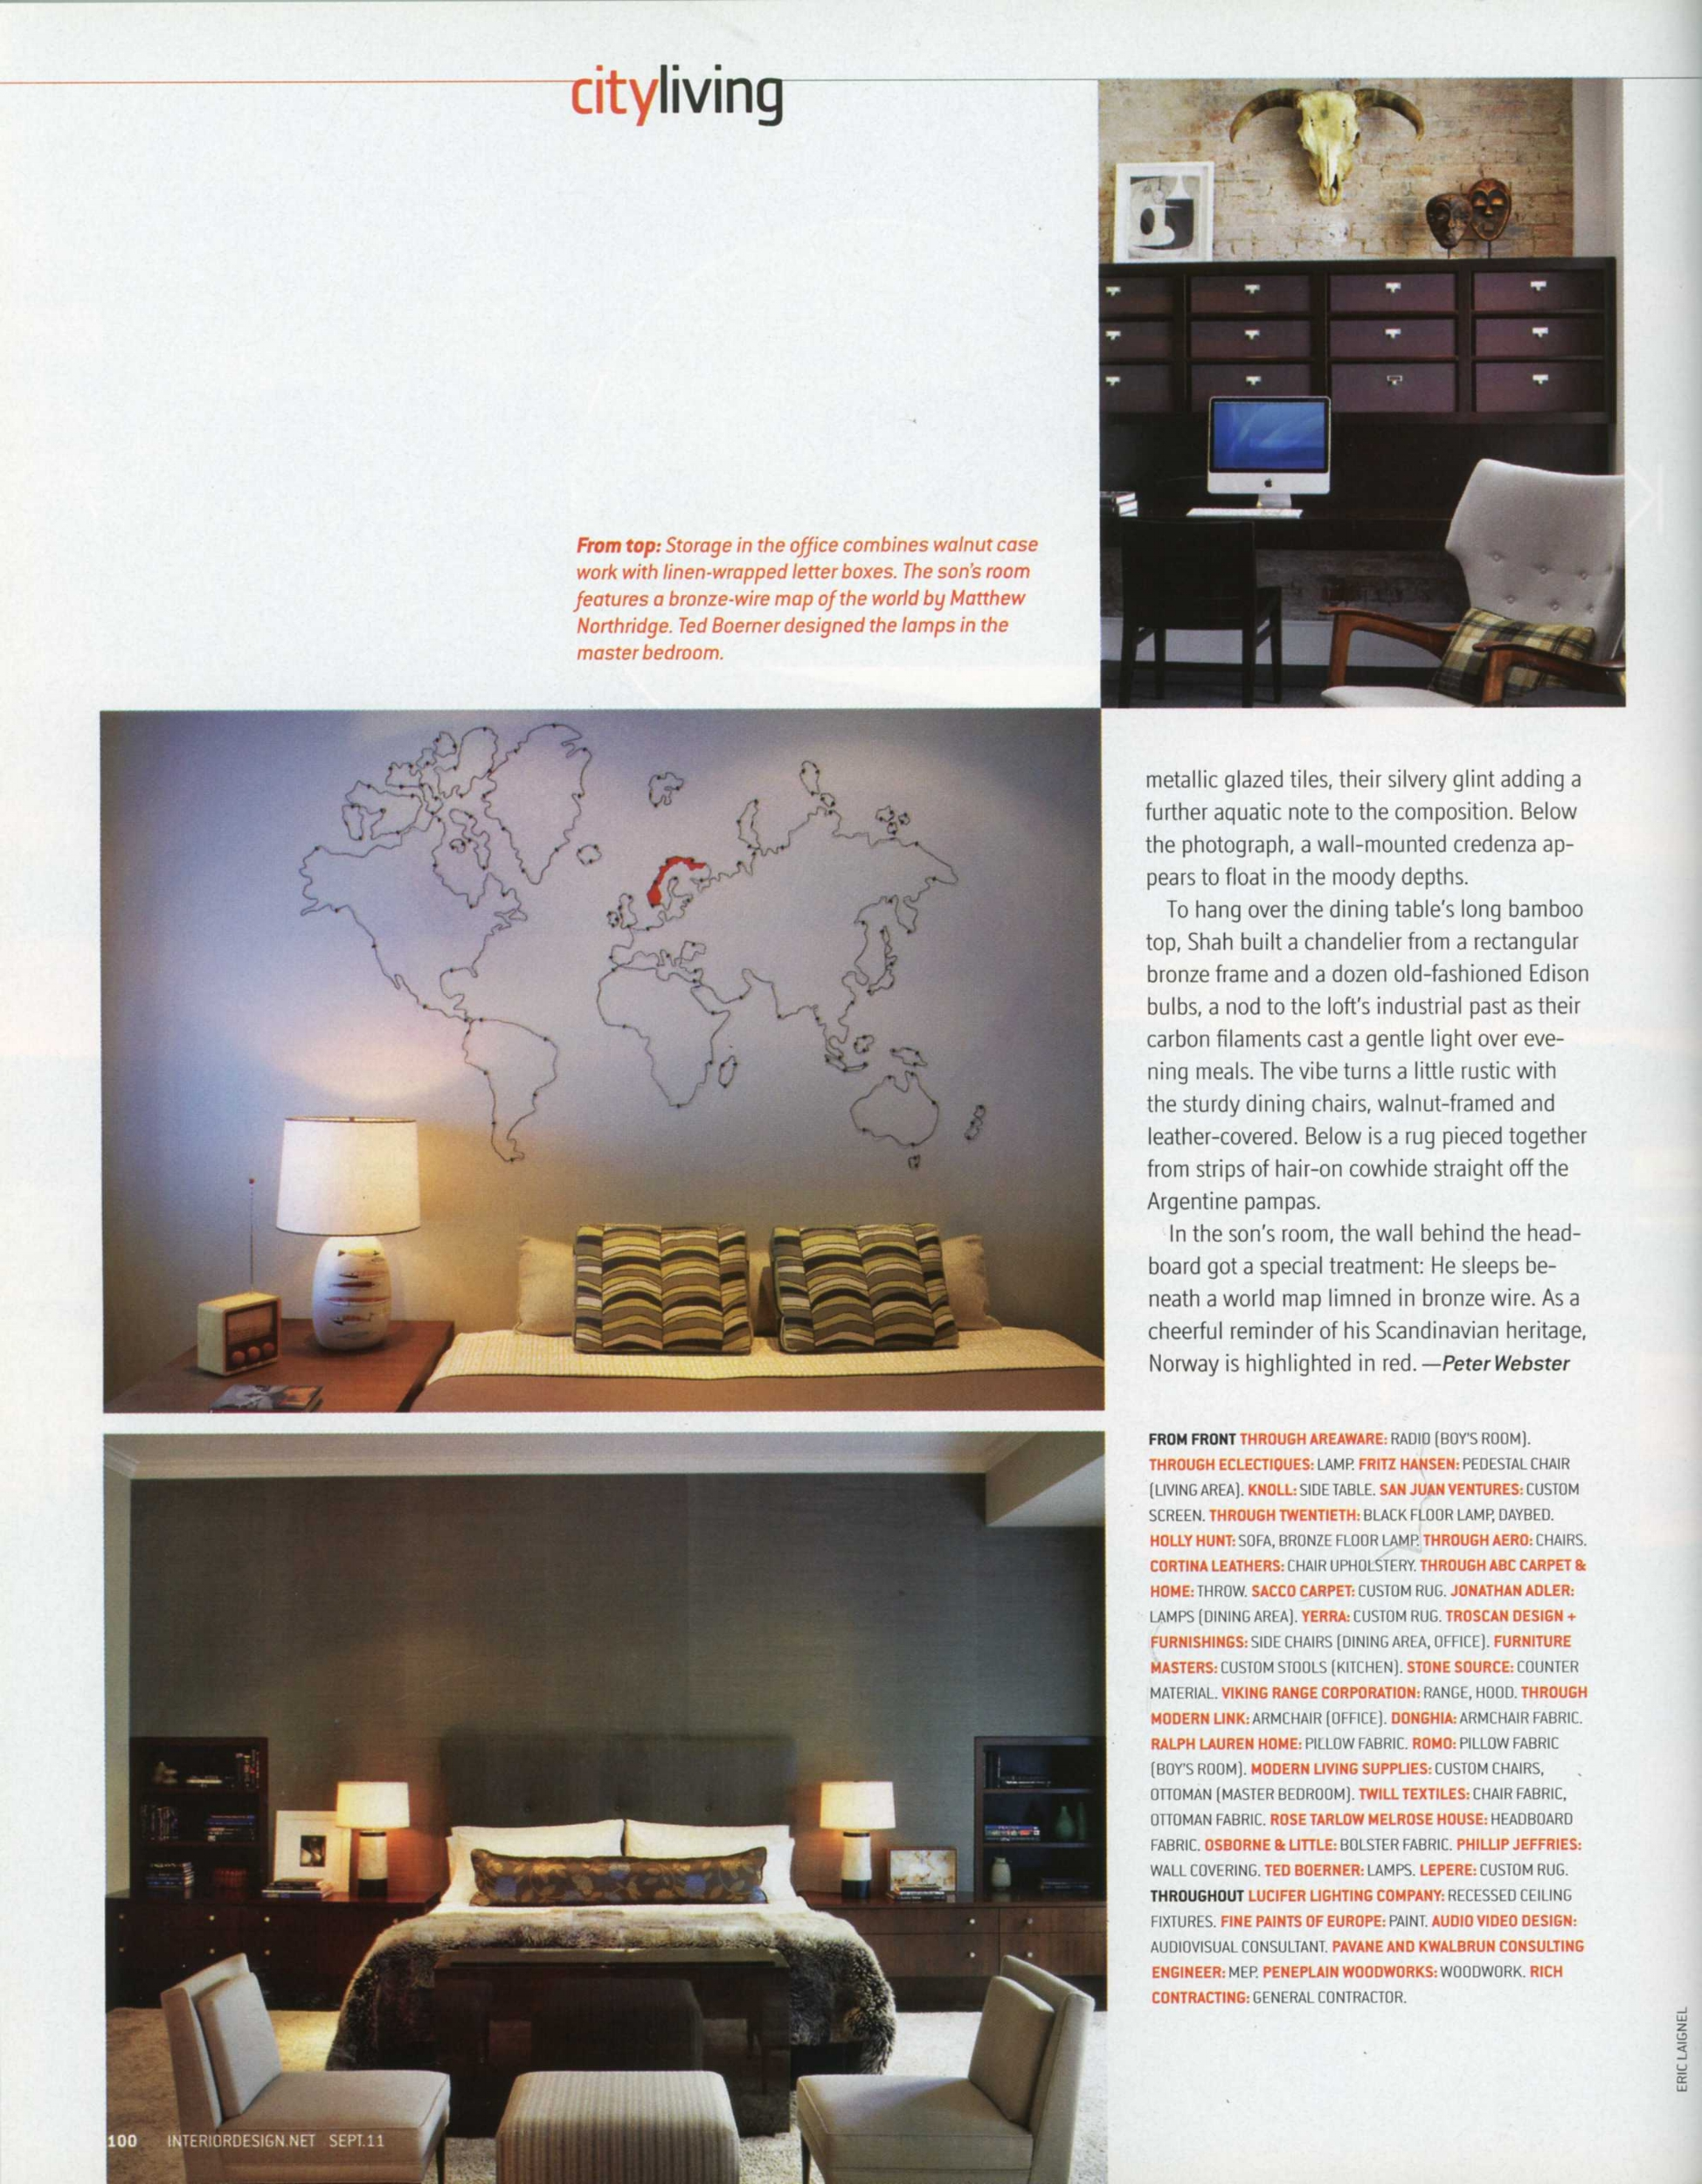 Interior Design_Nov 11_Soho Apt_Full Article_Page_7.jpg